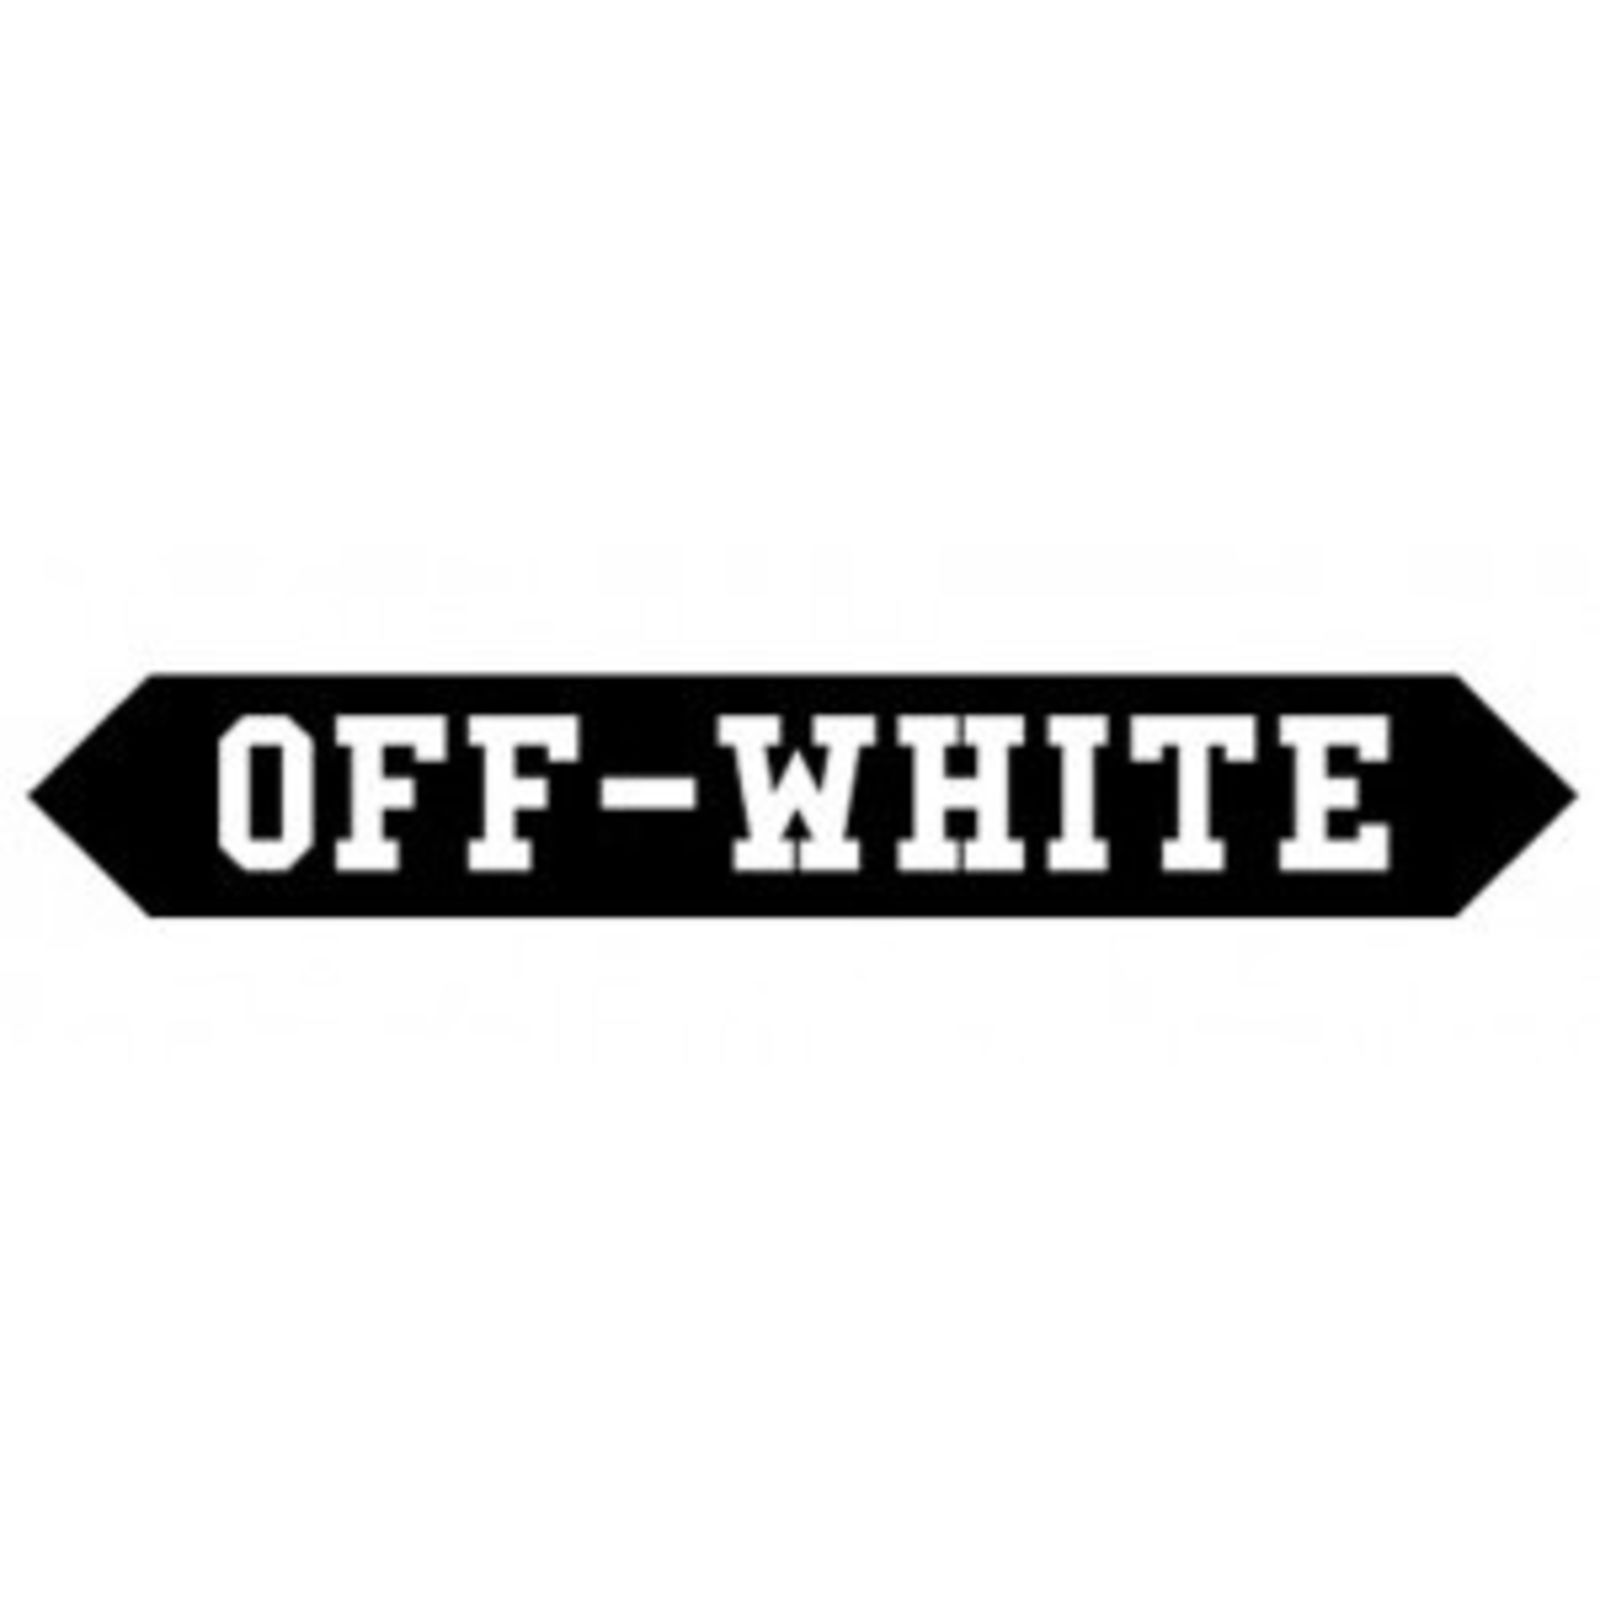 OFF-WHITE™ C/O VIRGIL ABLOH